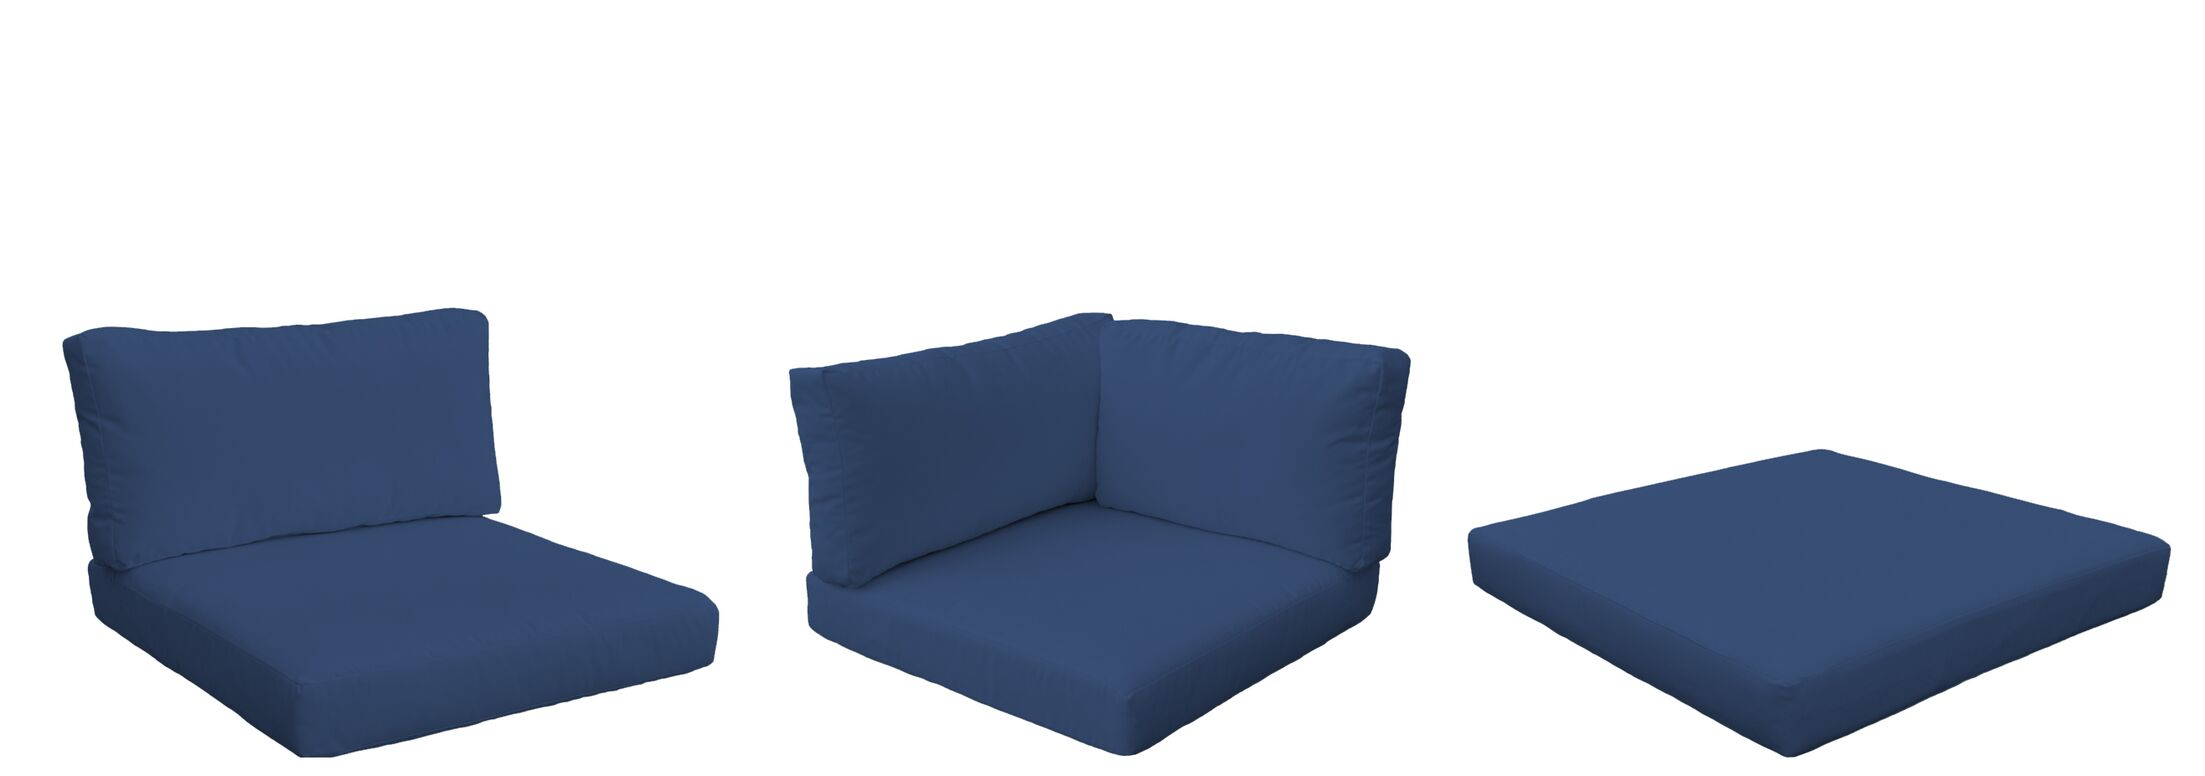 Monterey Outdoor 12 Piece Lounge Chair Cushion Set Fabric: Navy